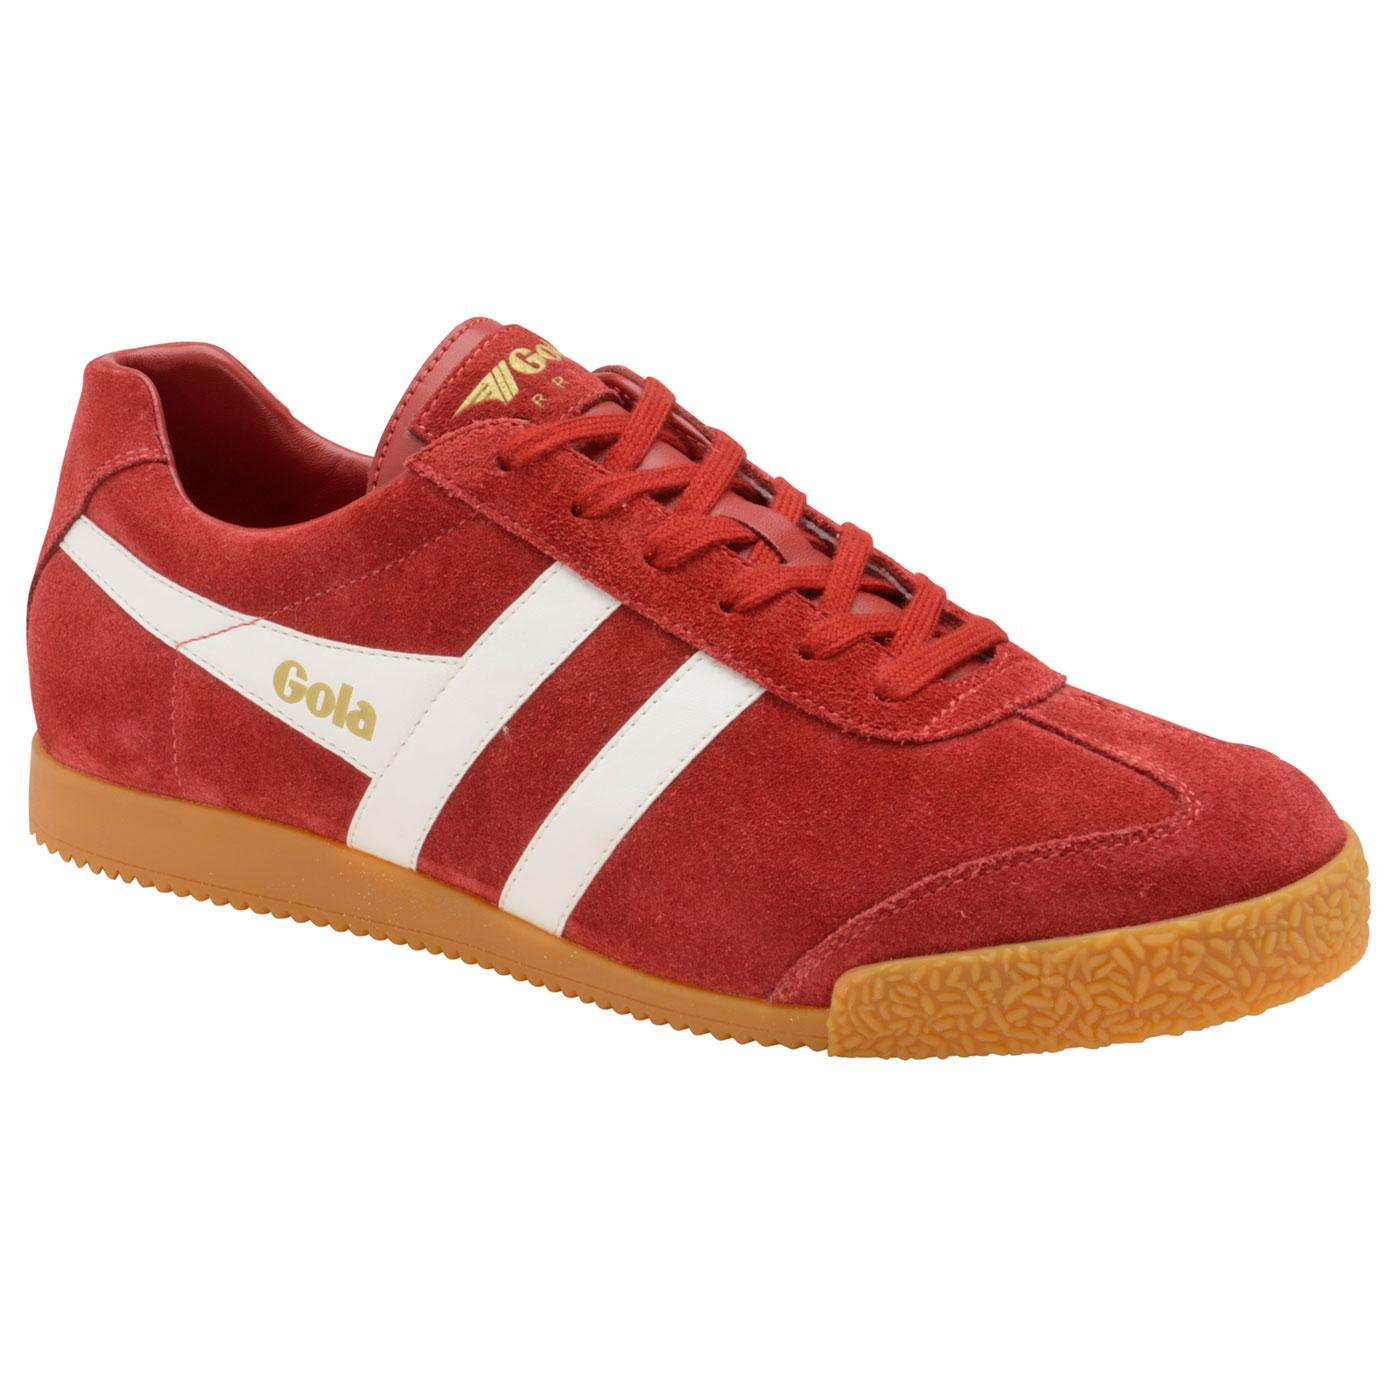 GOLA Harrier Suede Mens Retro 1970s Trainers Red